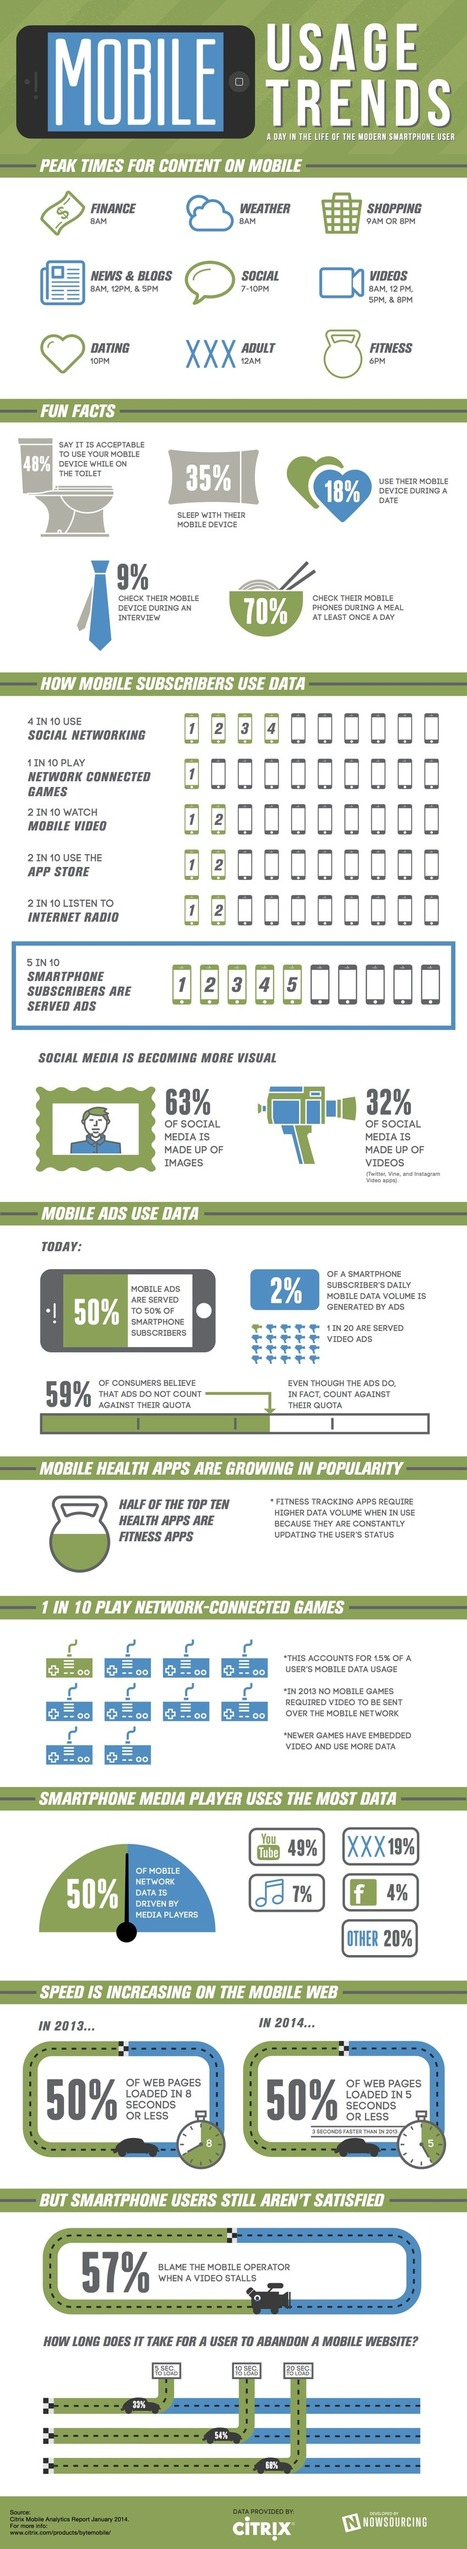 A Day in the Life of the Modern Smartphone User [Infographic] | Attractum | Scoop.it